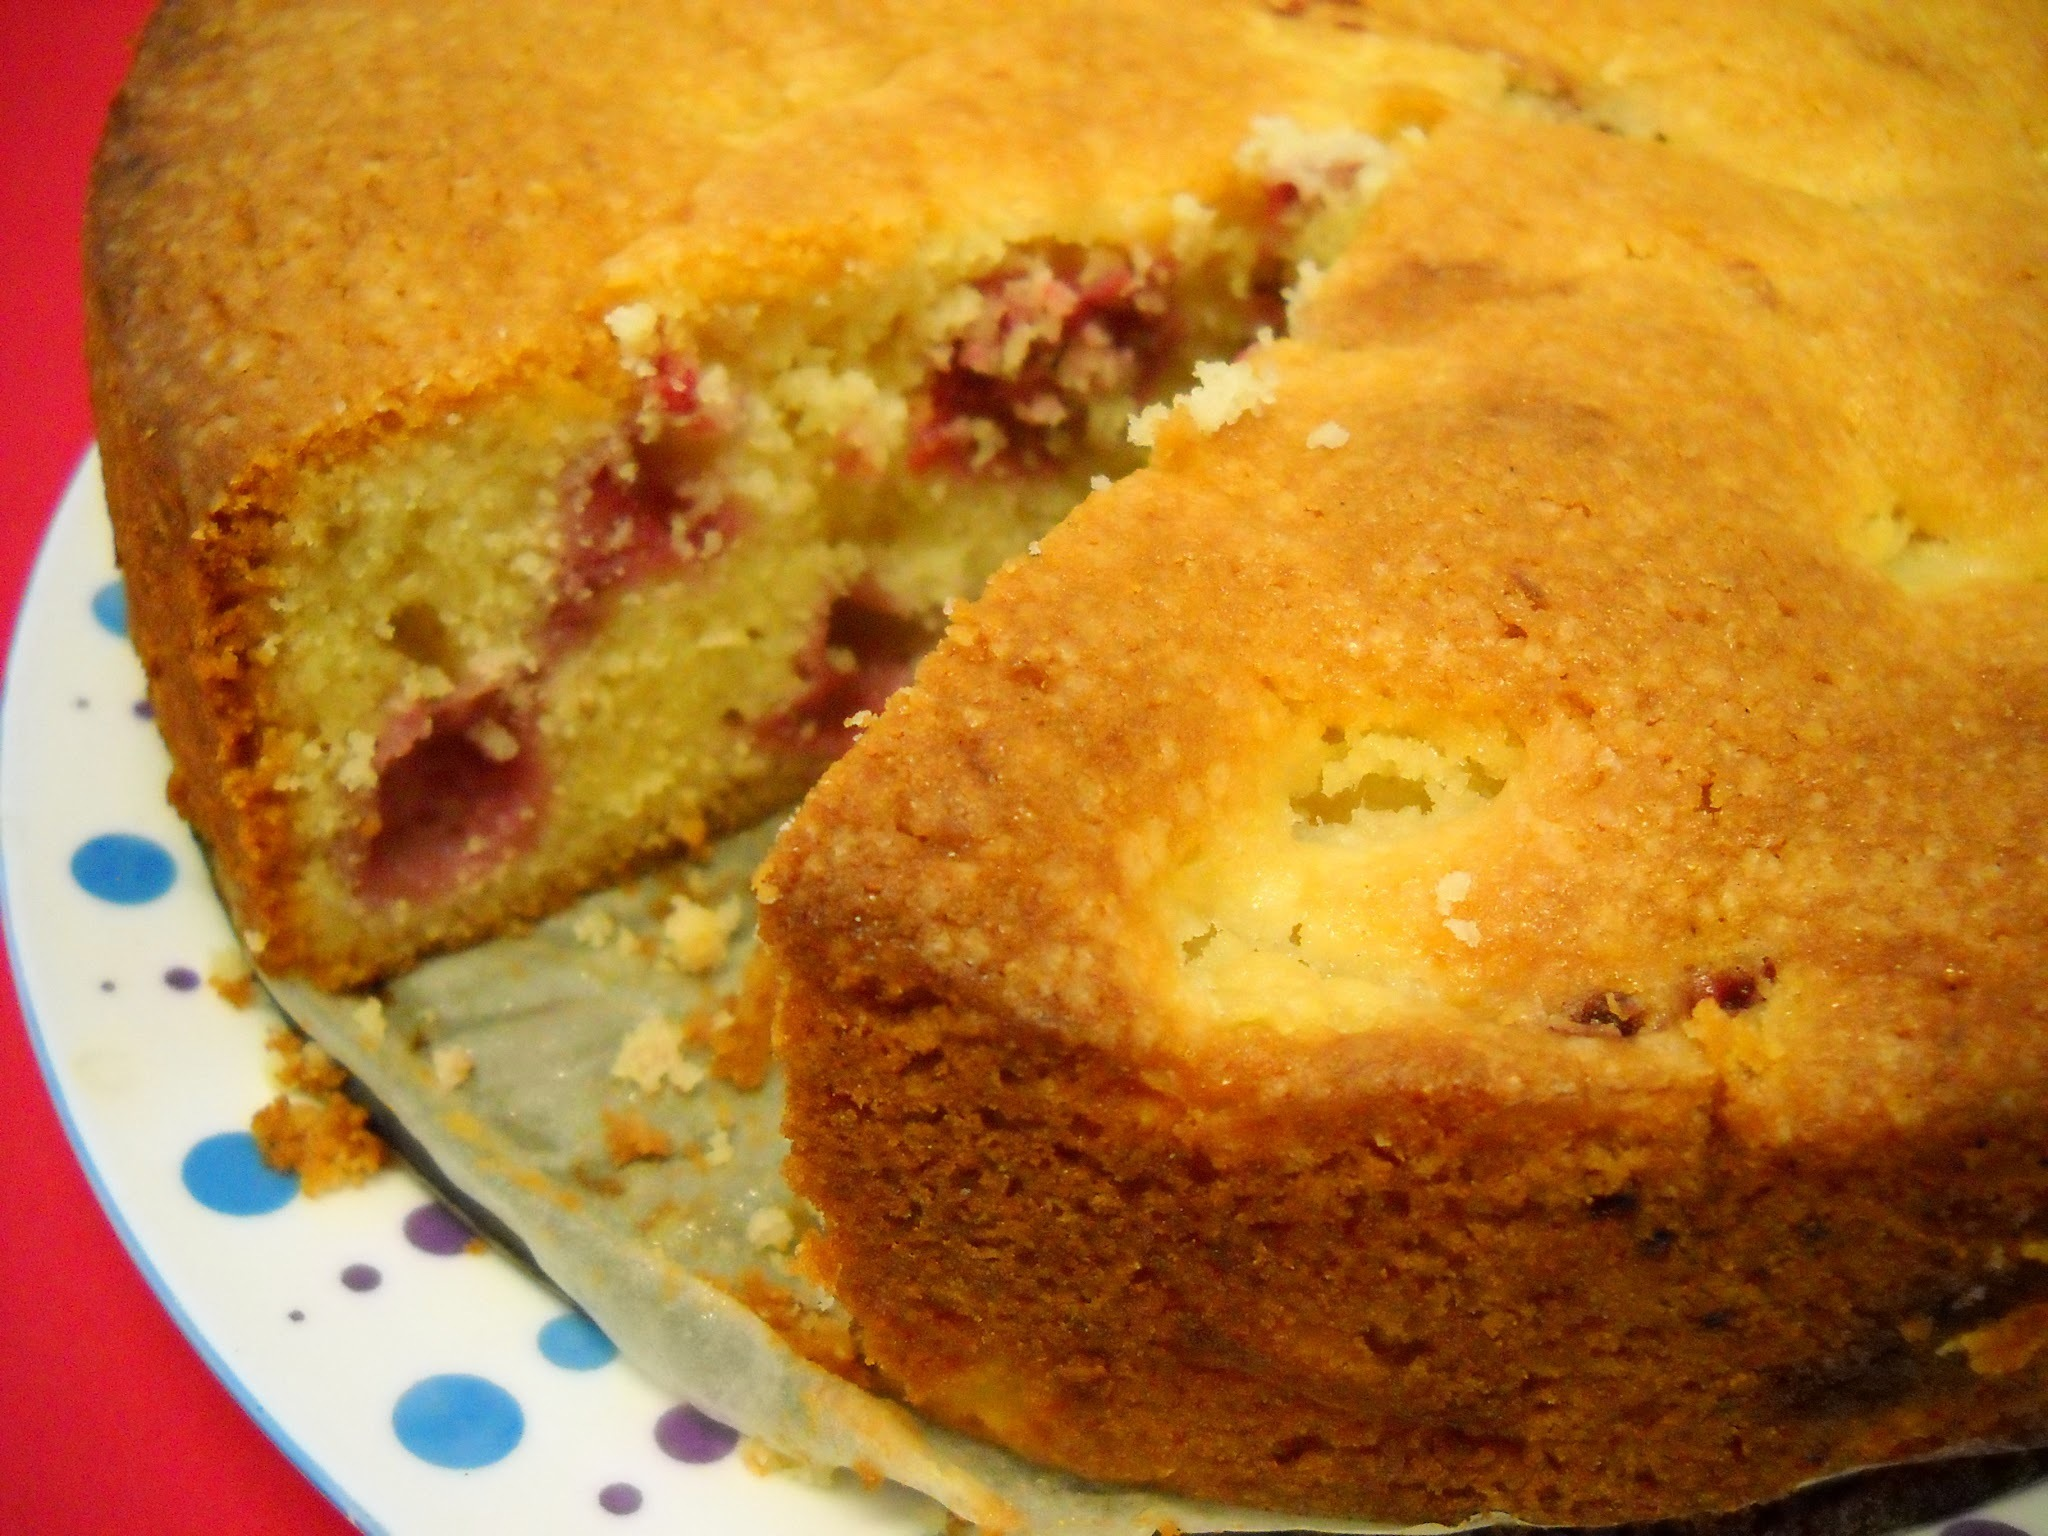 Raspberry and pear cake